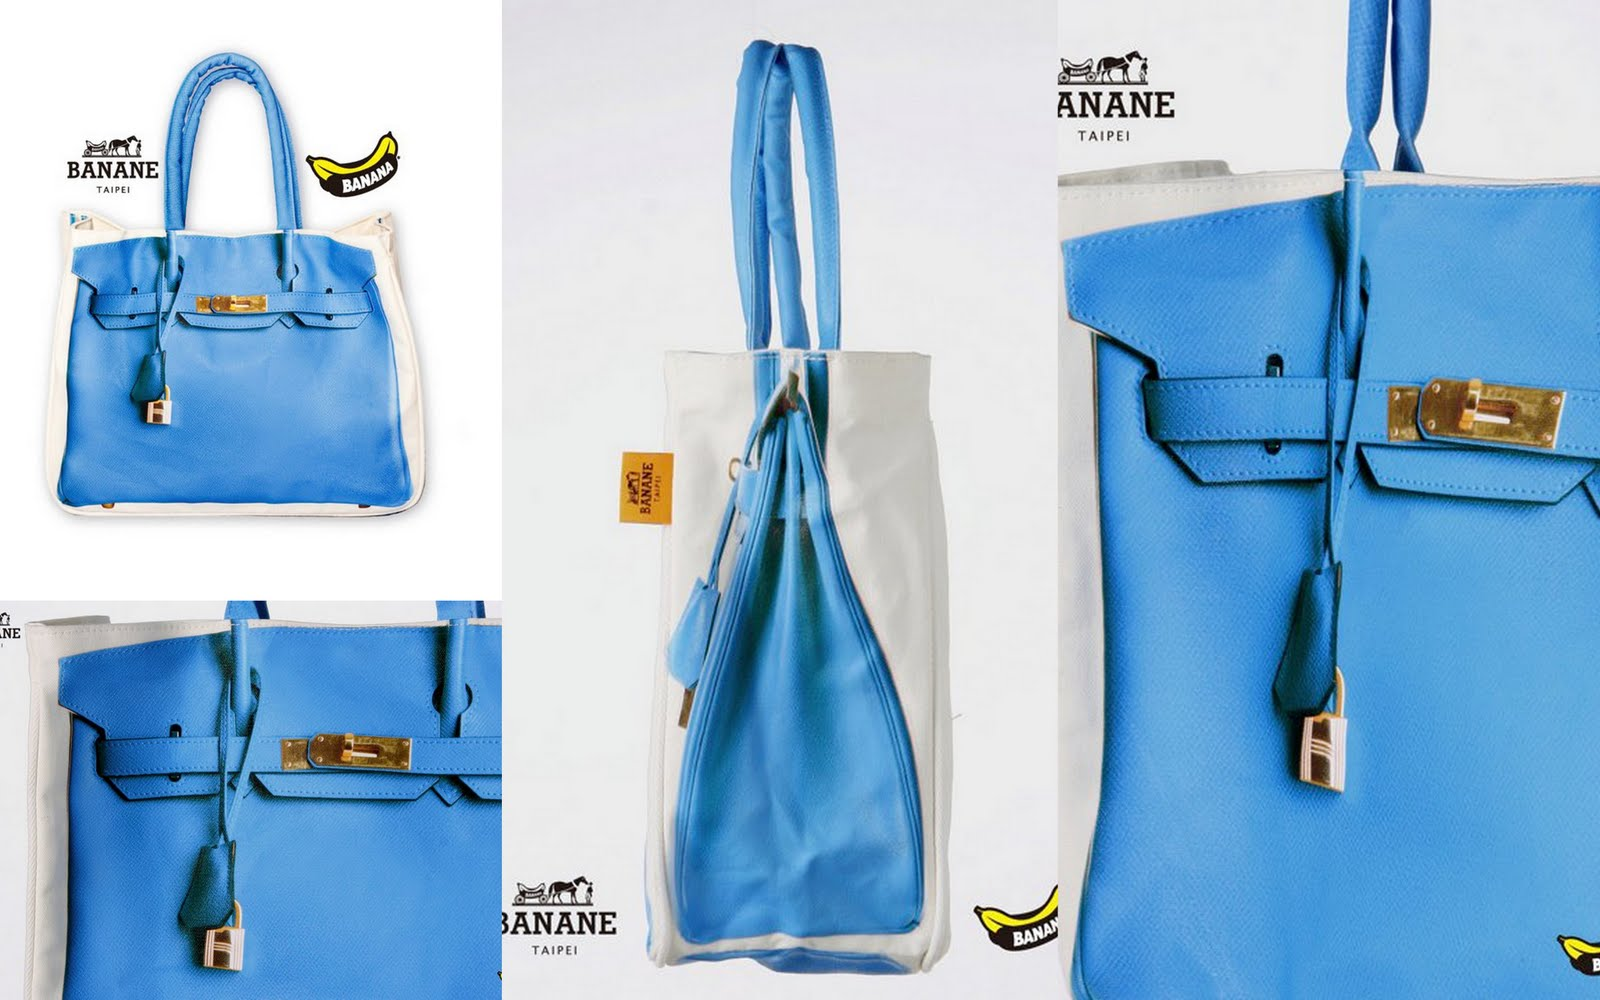 banana bag hospital images